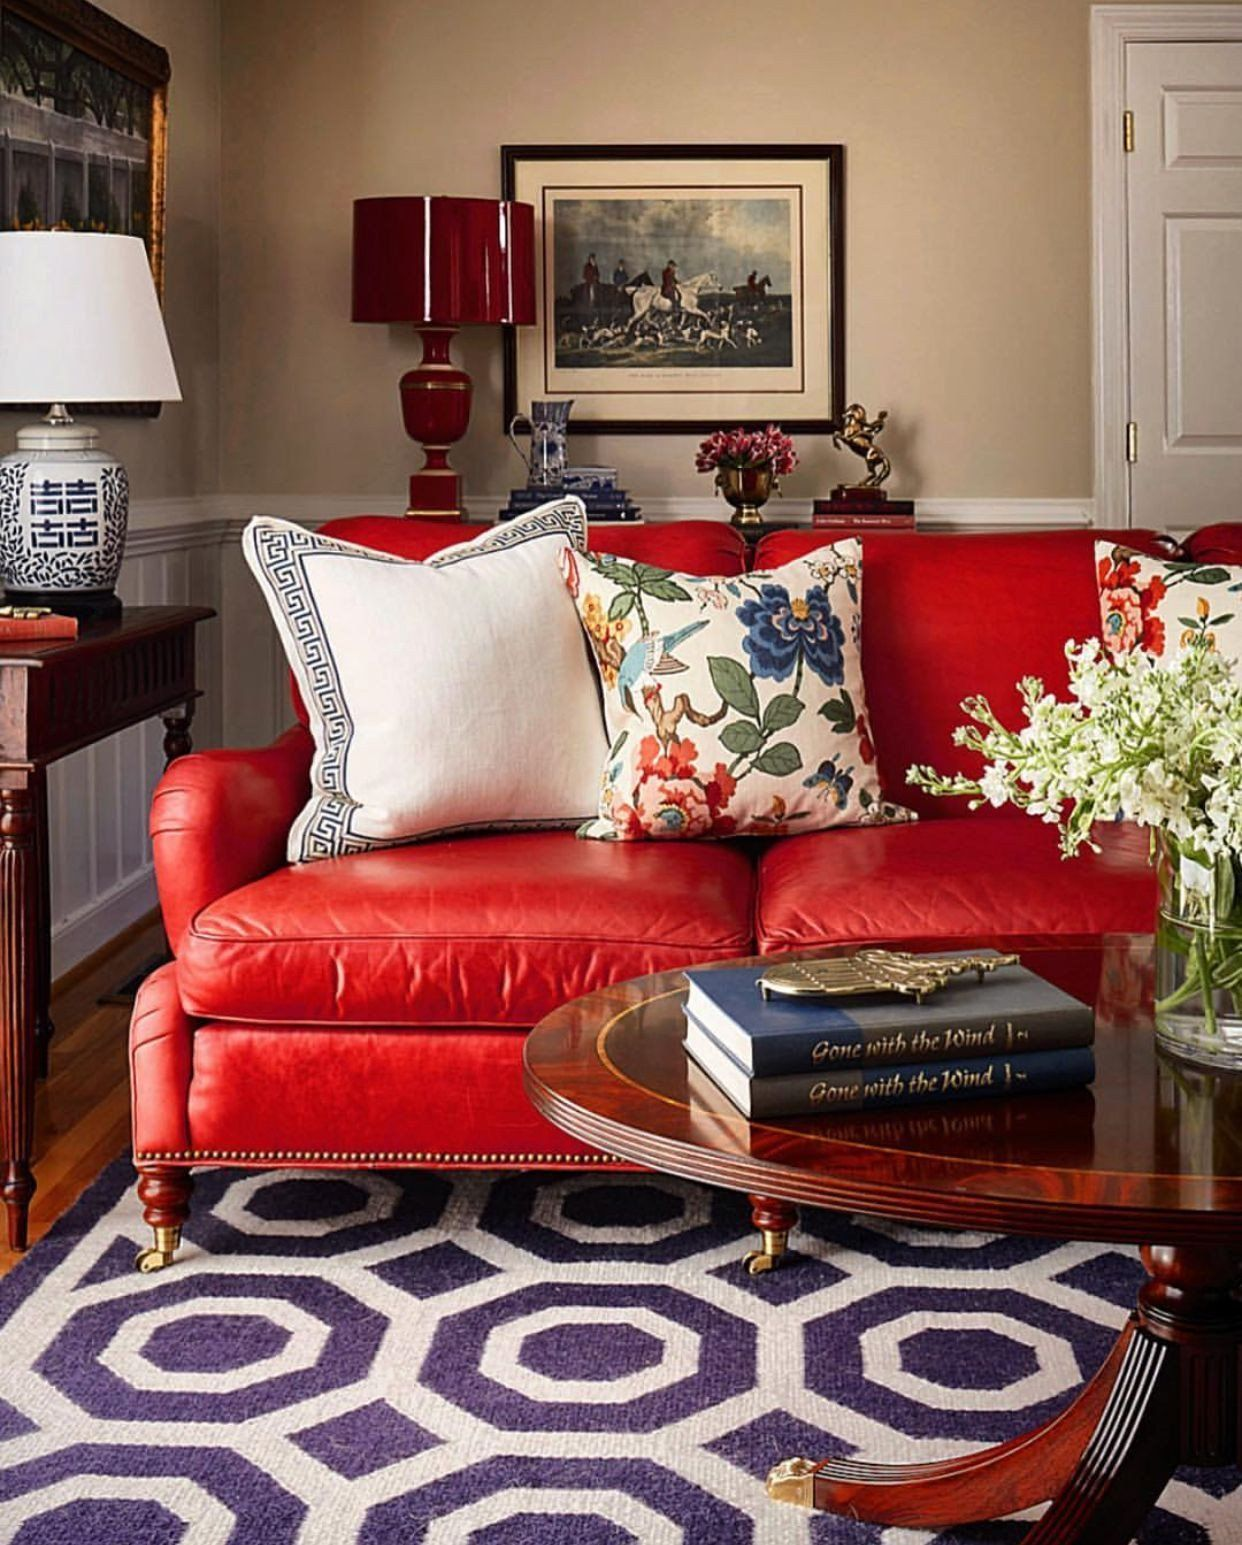 Red Leather Sofa Living Room Idea Pin By Melody Mehrabi On Home Decoration With Images Red Sofa Living Room Red Couch Living Room Red Leather Couch Living Room